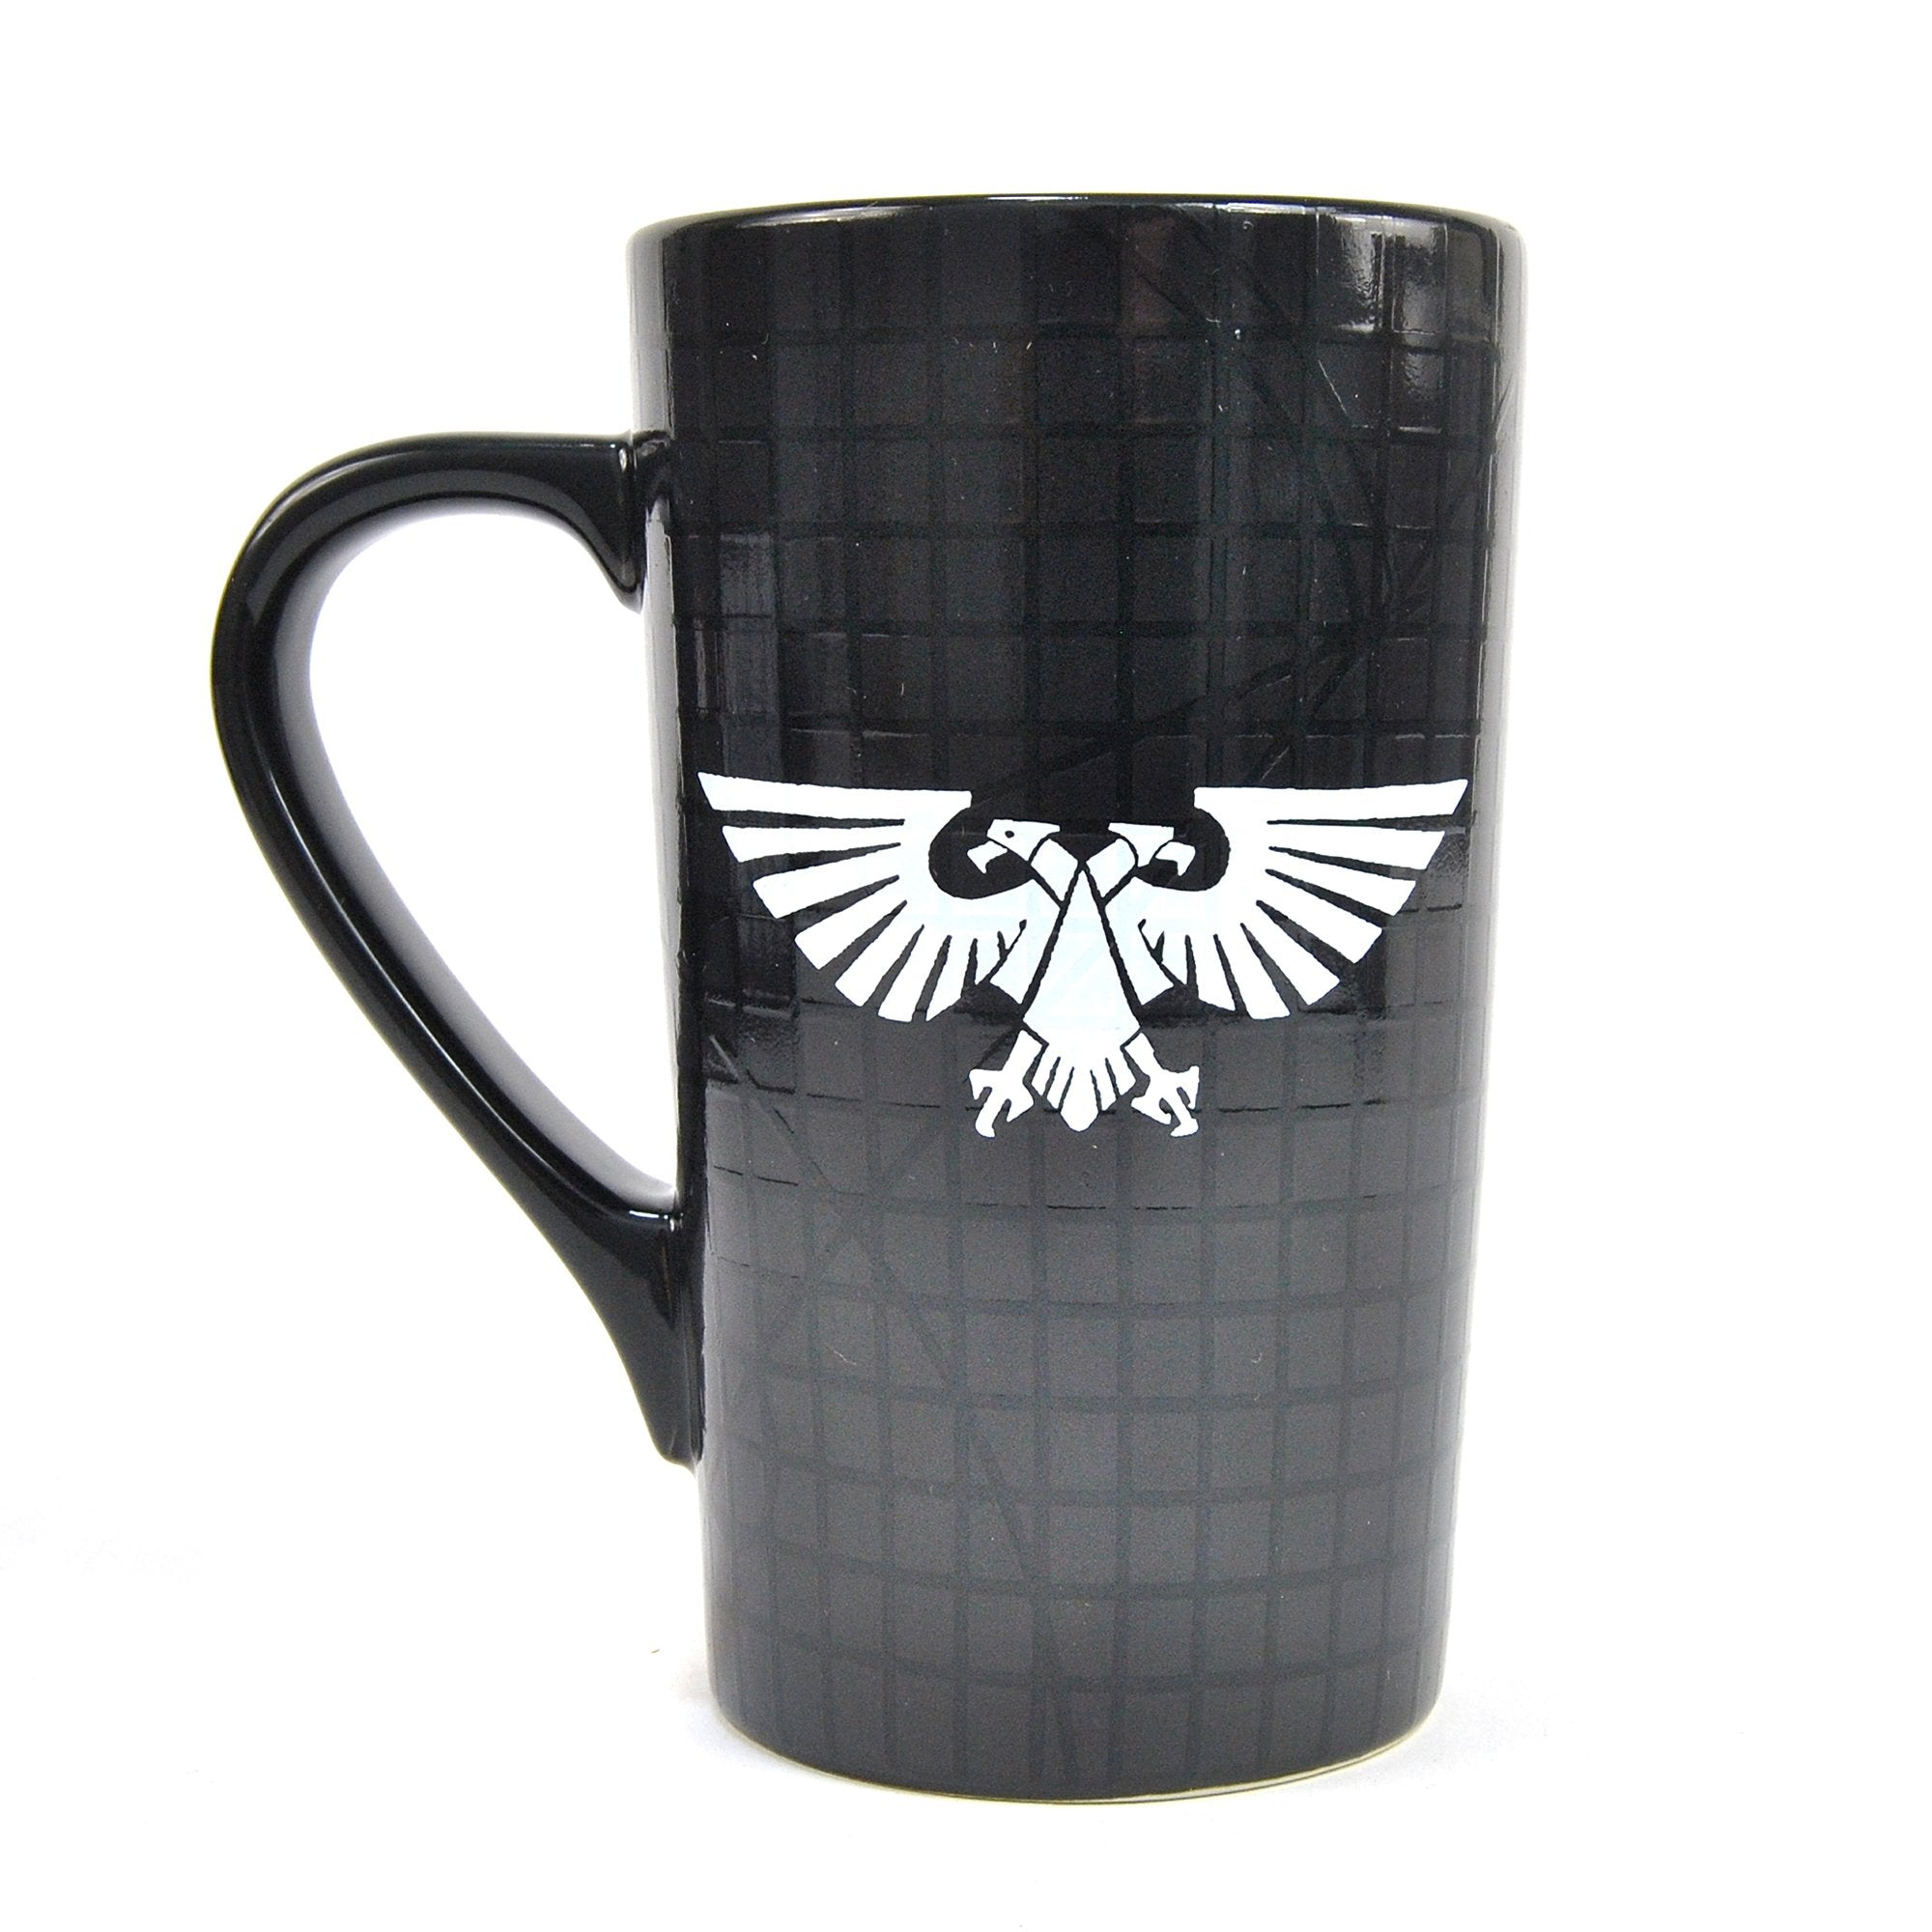 Warhammer 40,000 Heat Changing Latte Mugs - Space Marine - Half Moon Bay US